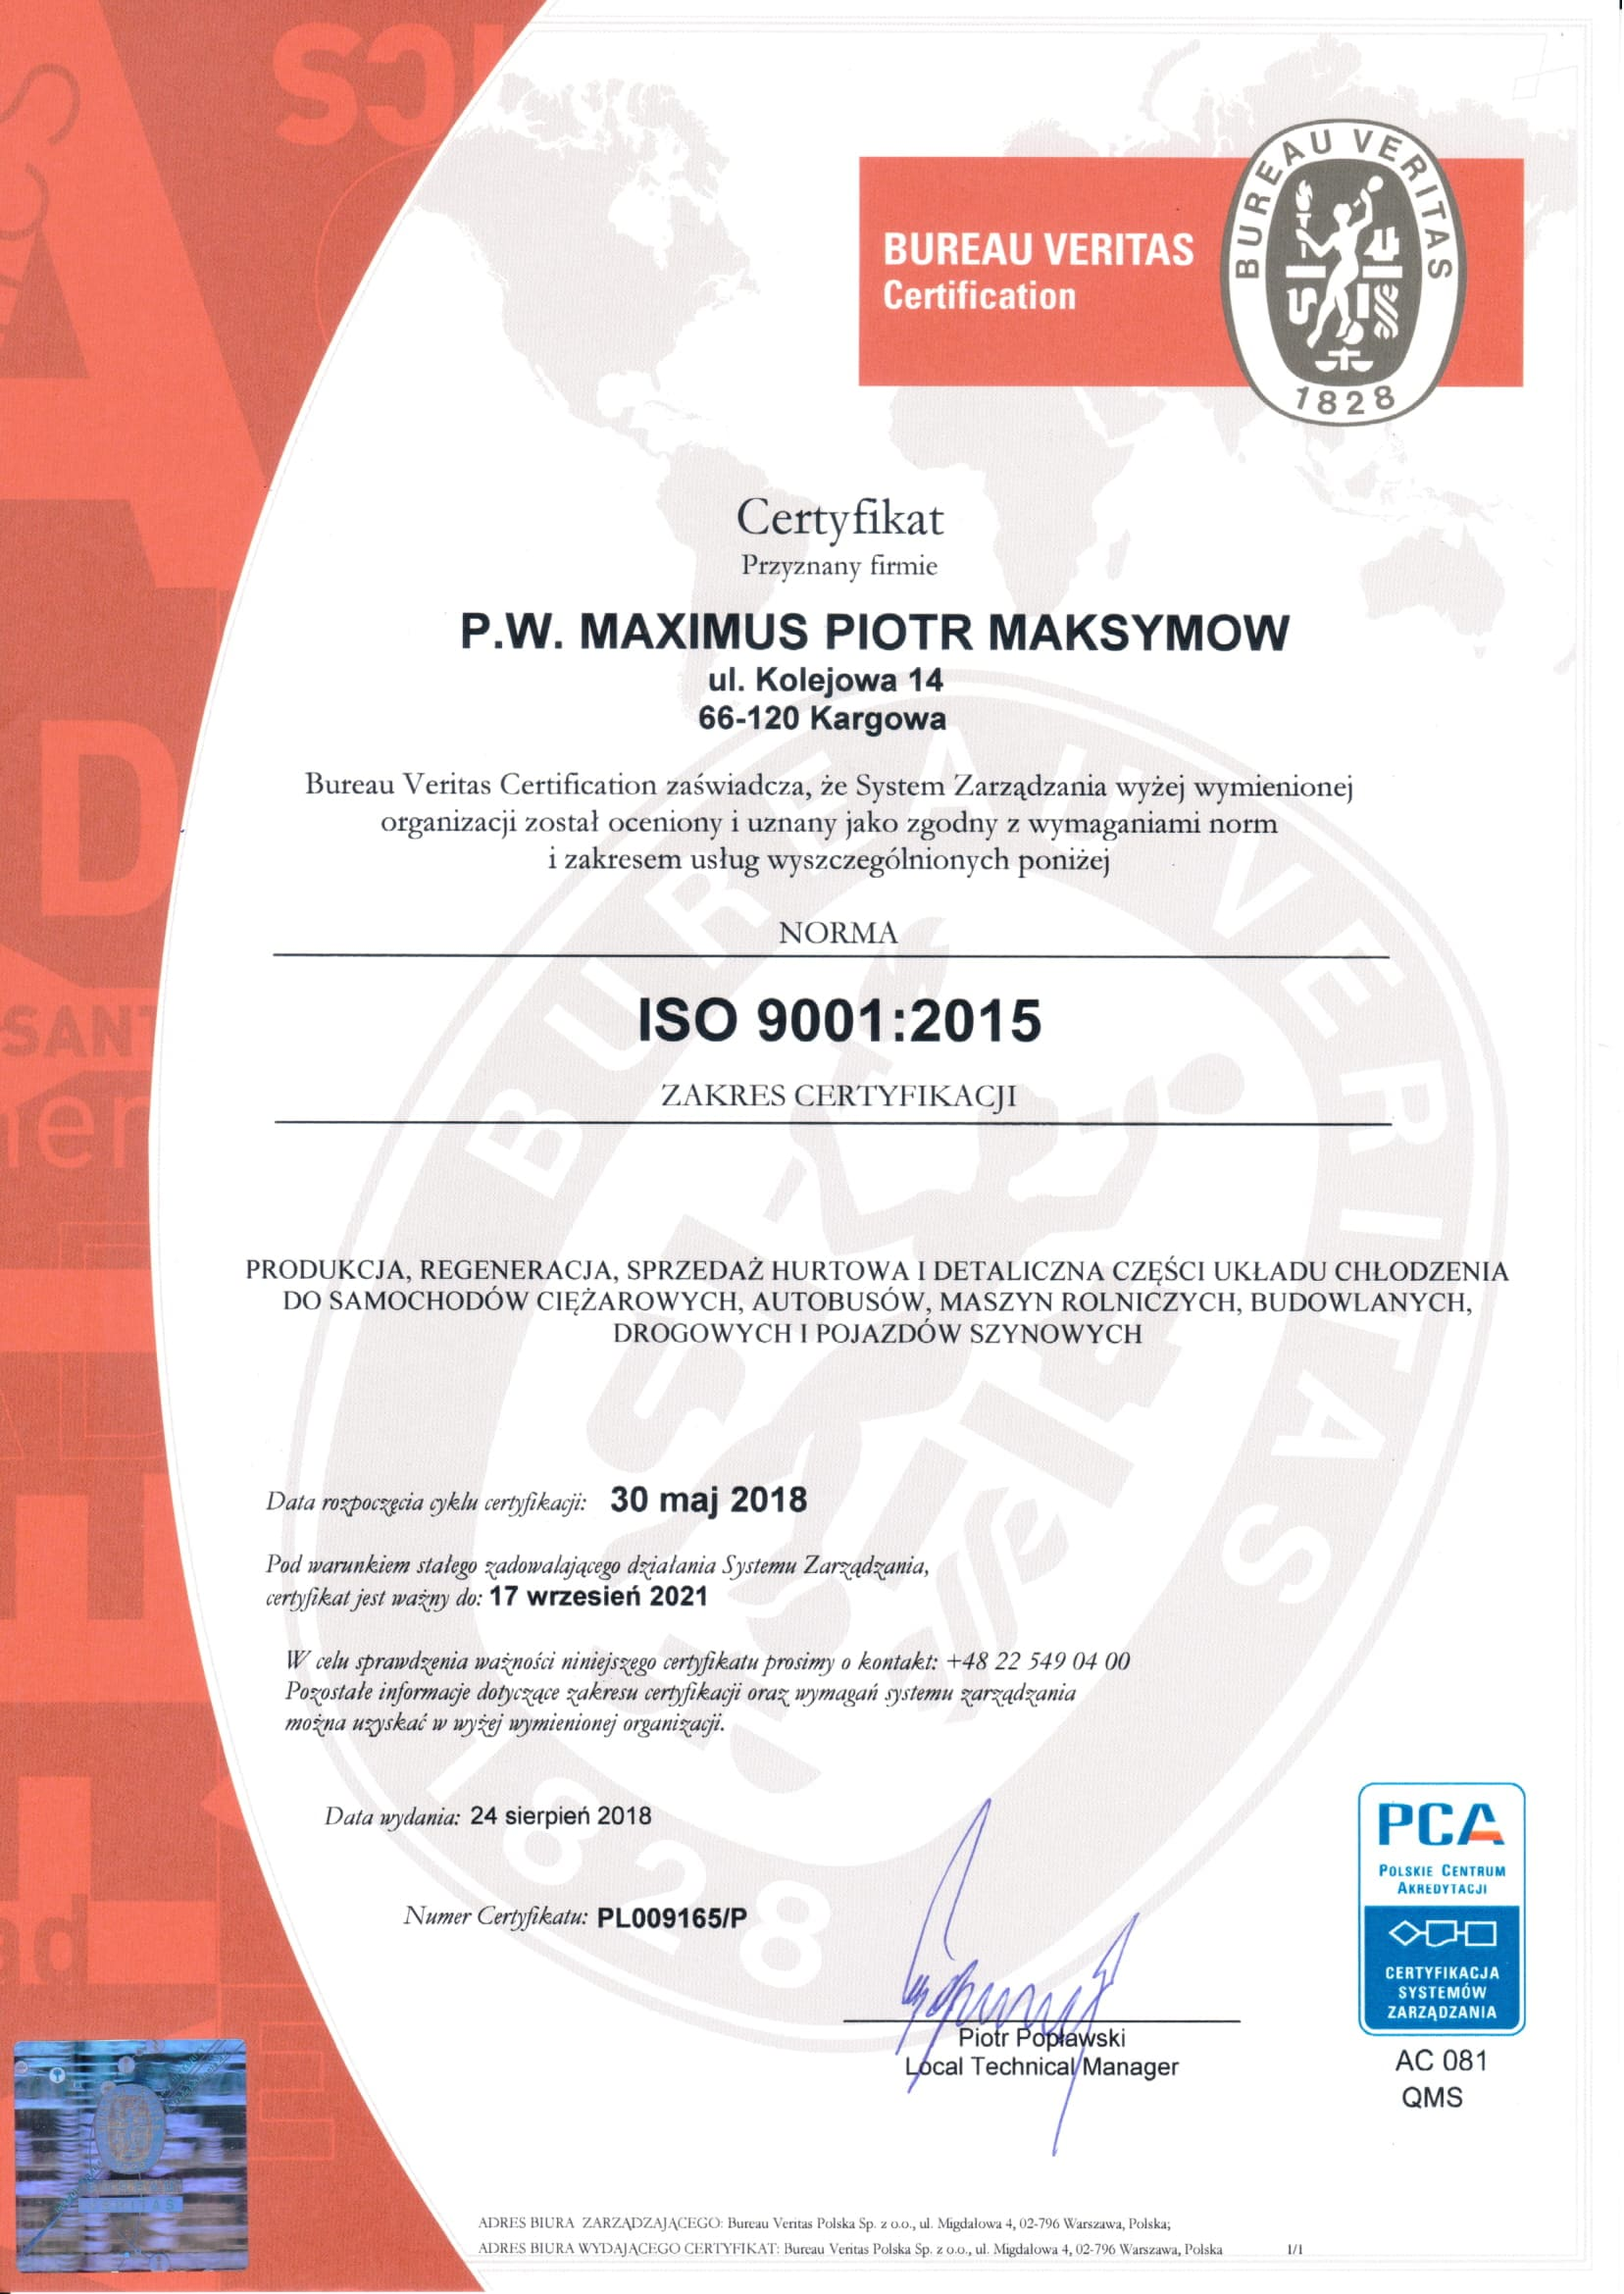 ISO2015certyf 1 5